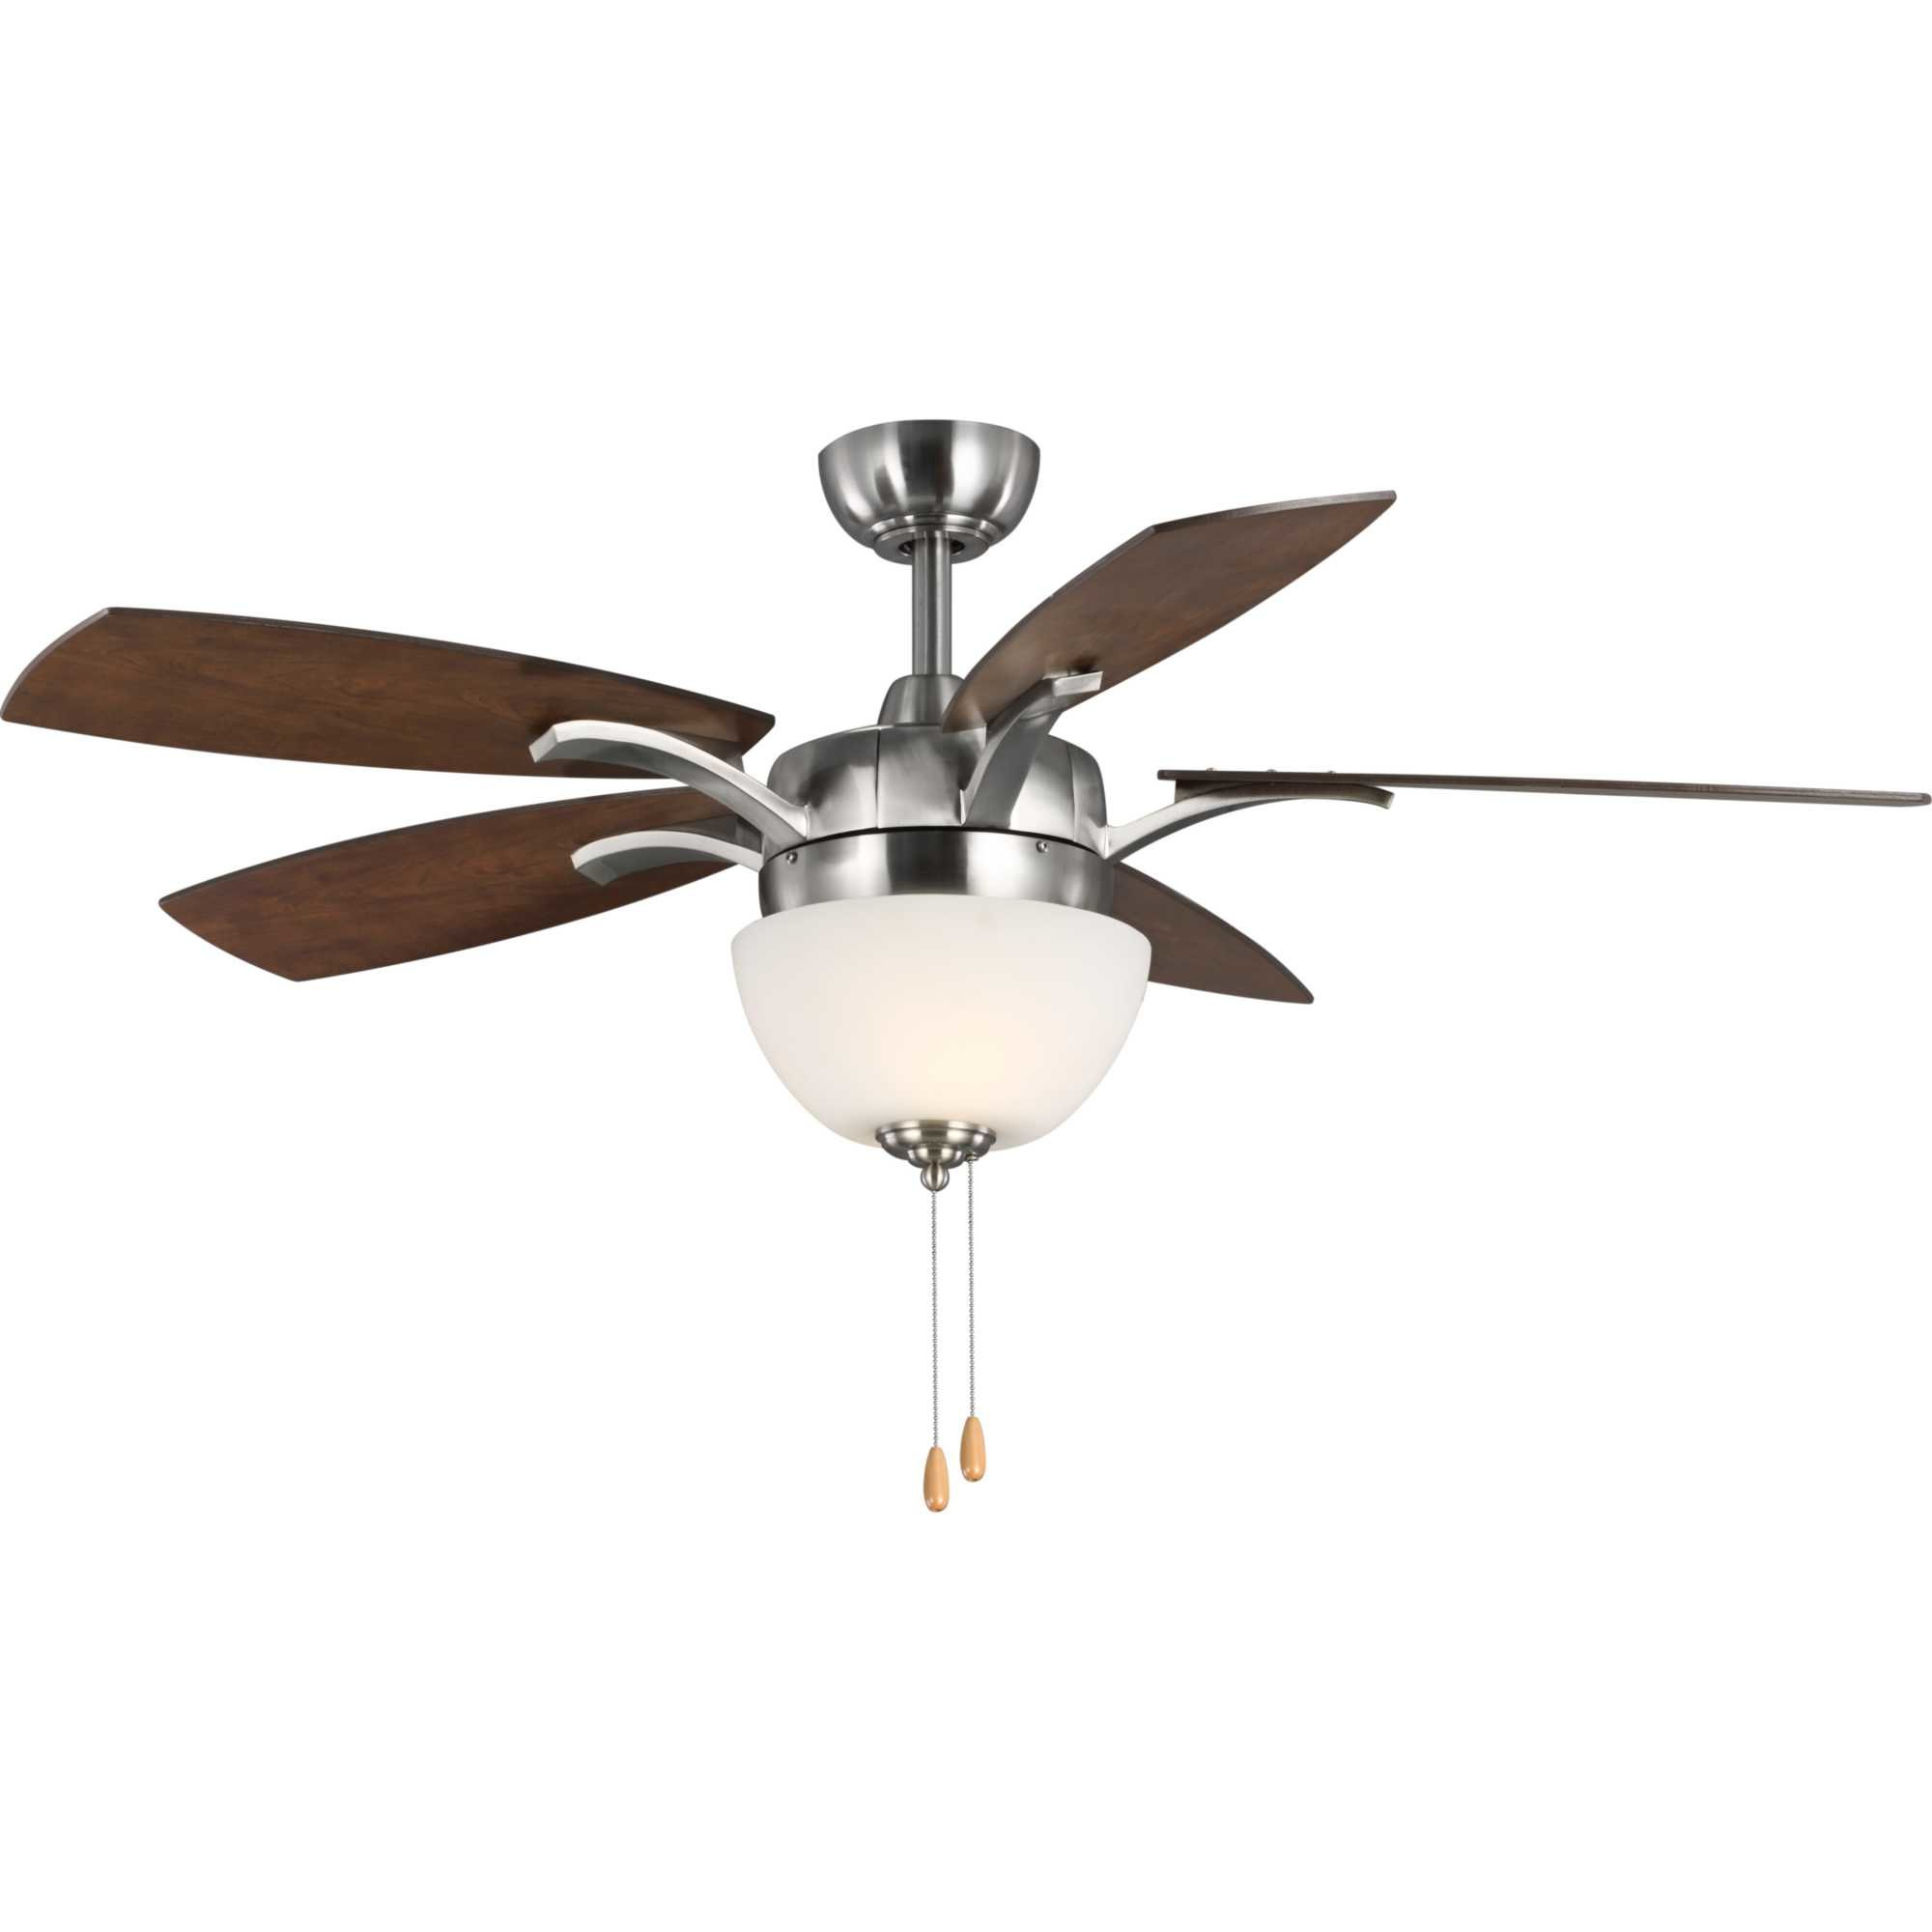 "Newest 52"" Tani 5 Blade Ceiling Fan In Crumbley 5 Blade Ceiling Fans (View 17 of 20)"